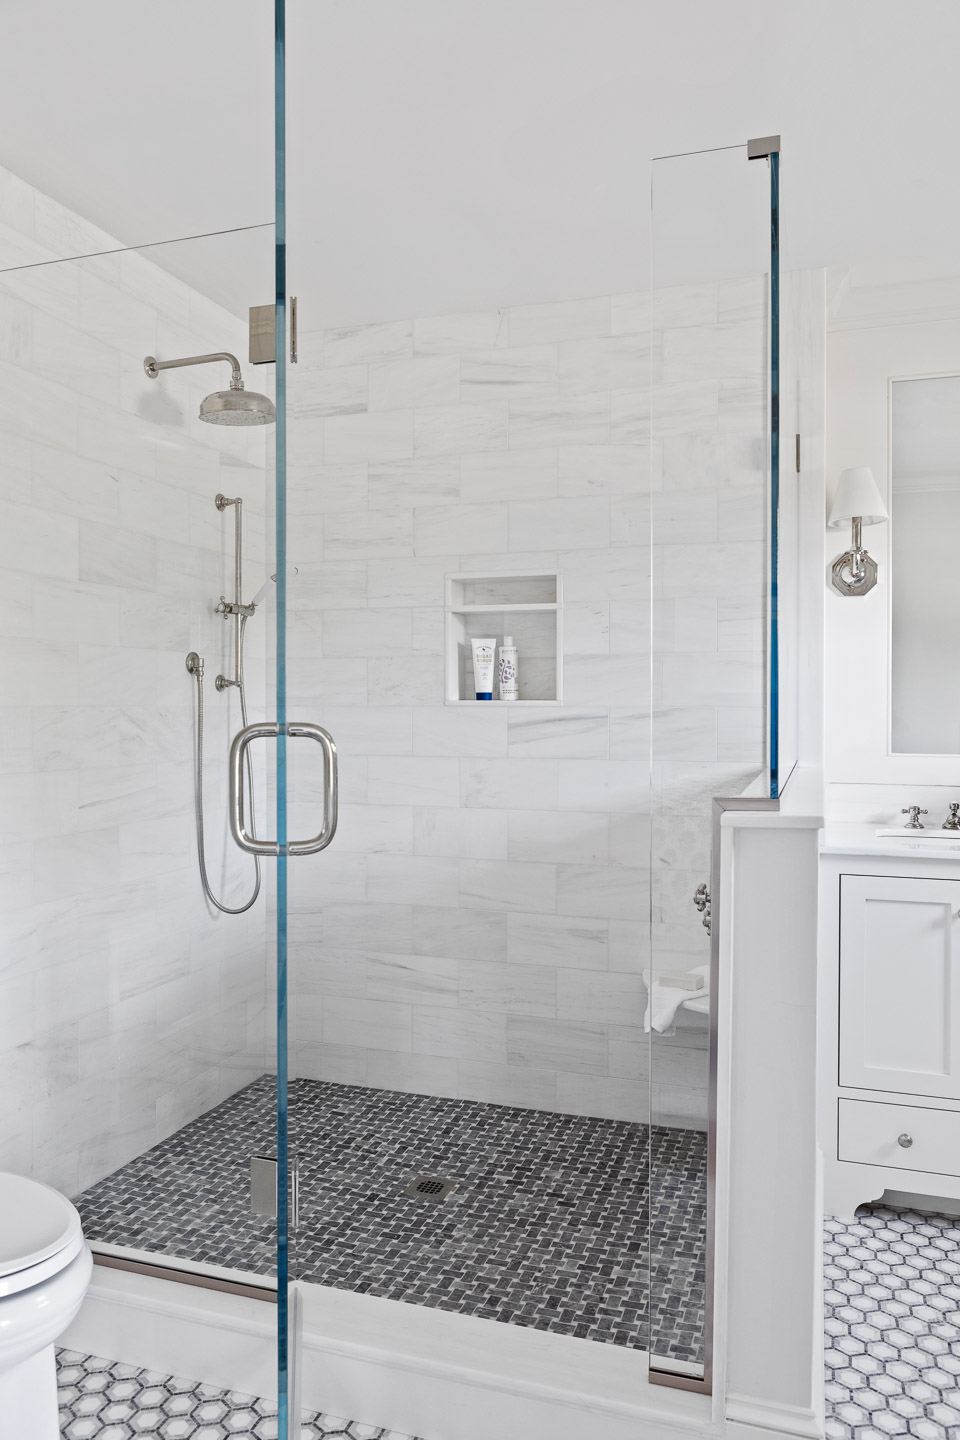 Rhode Island, interior design, interior designer, bathroom design, white bathroom